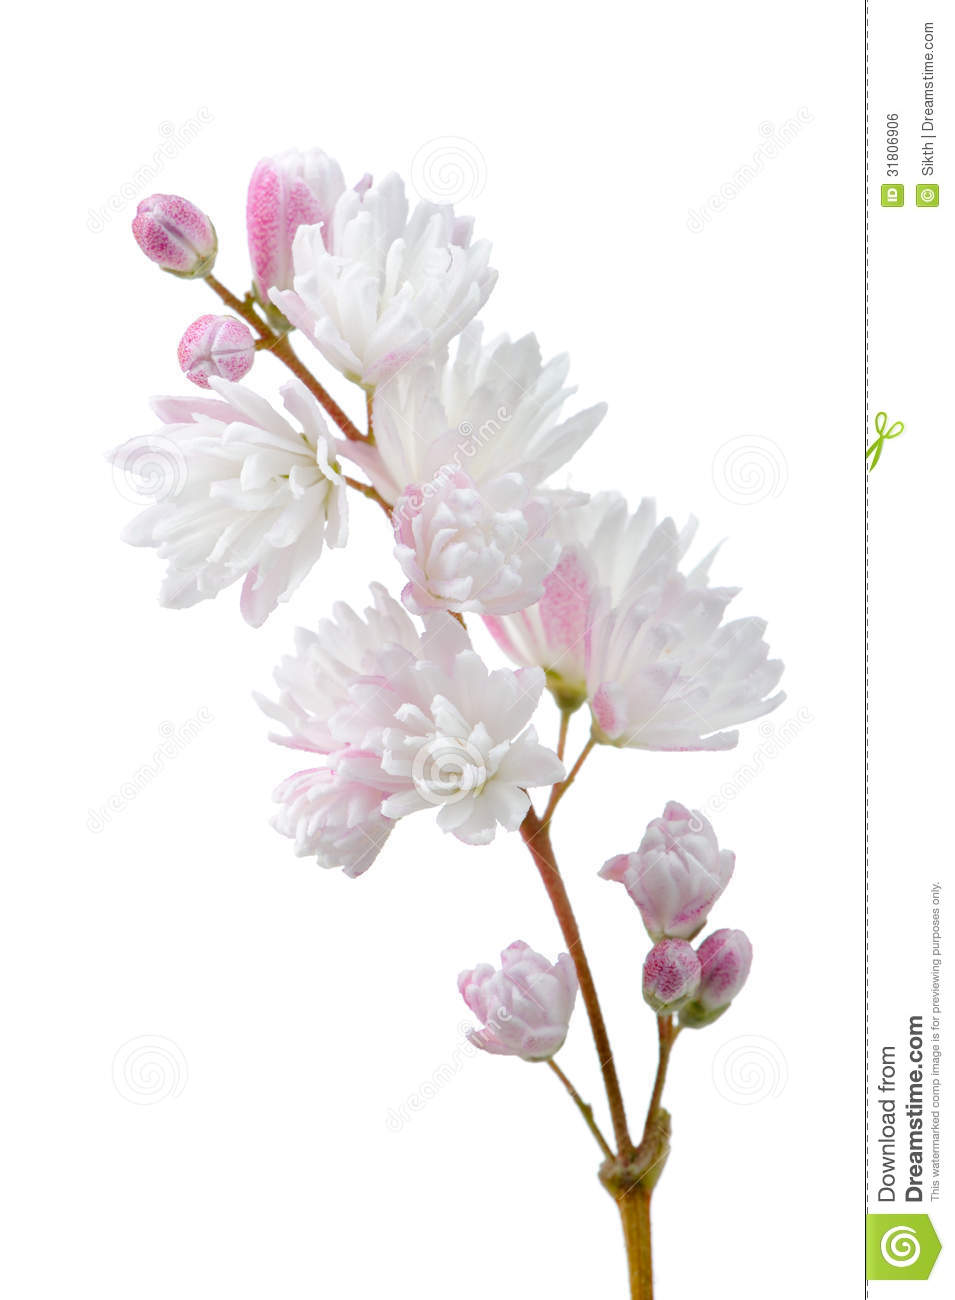 Beautiful deutzia scabra flowers on white background royalty free background beautiful branch deutzia flowers pinkish scabra white dhlflorist Image collections